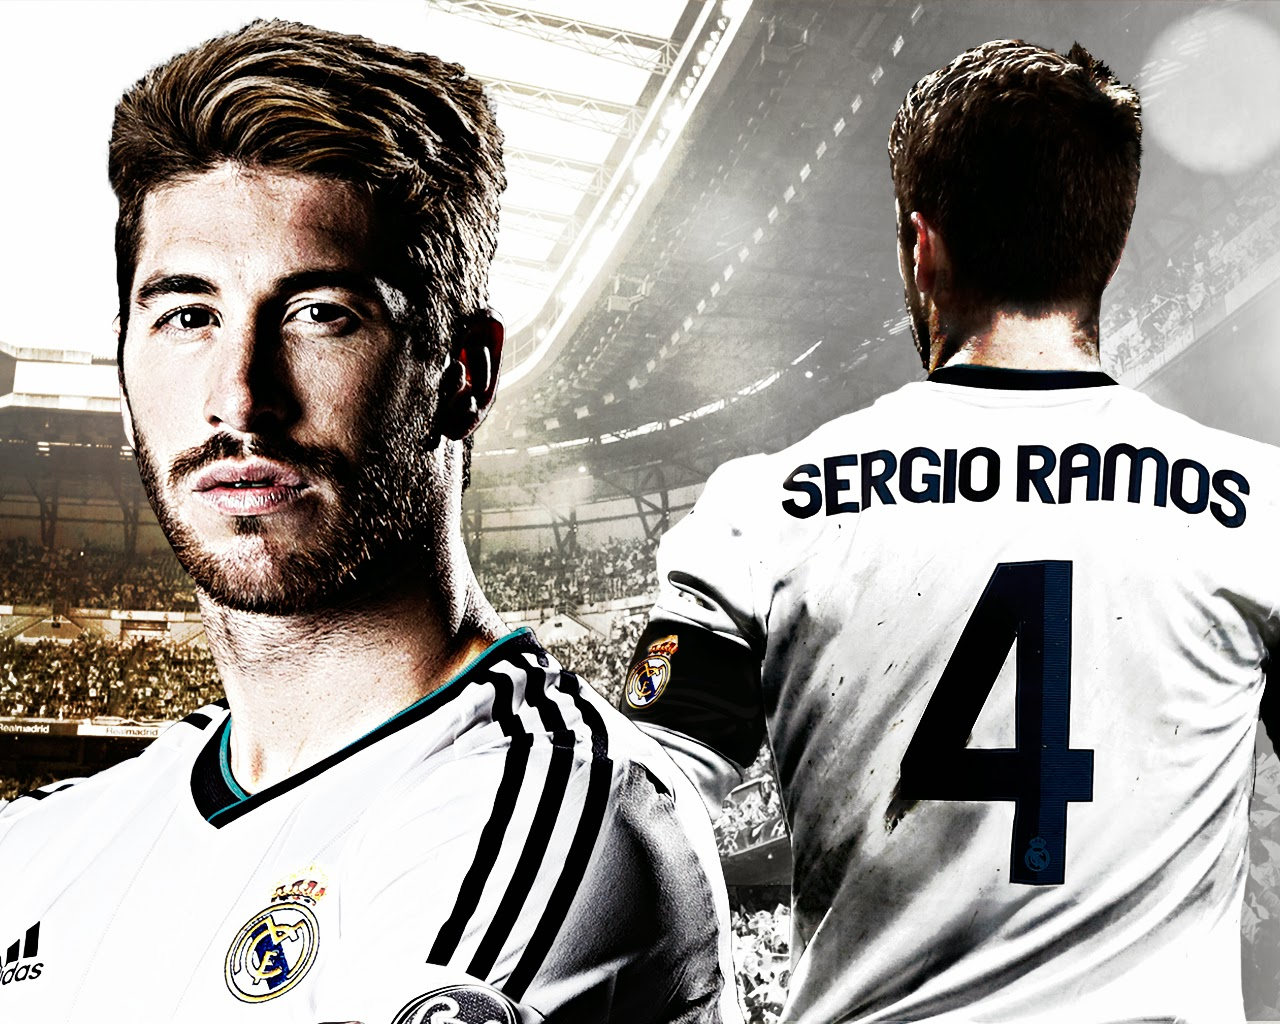 Sergio Ramos HD Wallpapers 2013-2014Sergio Ramos Tattoos 2014